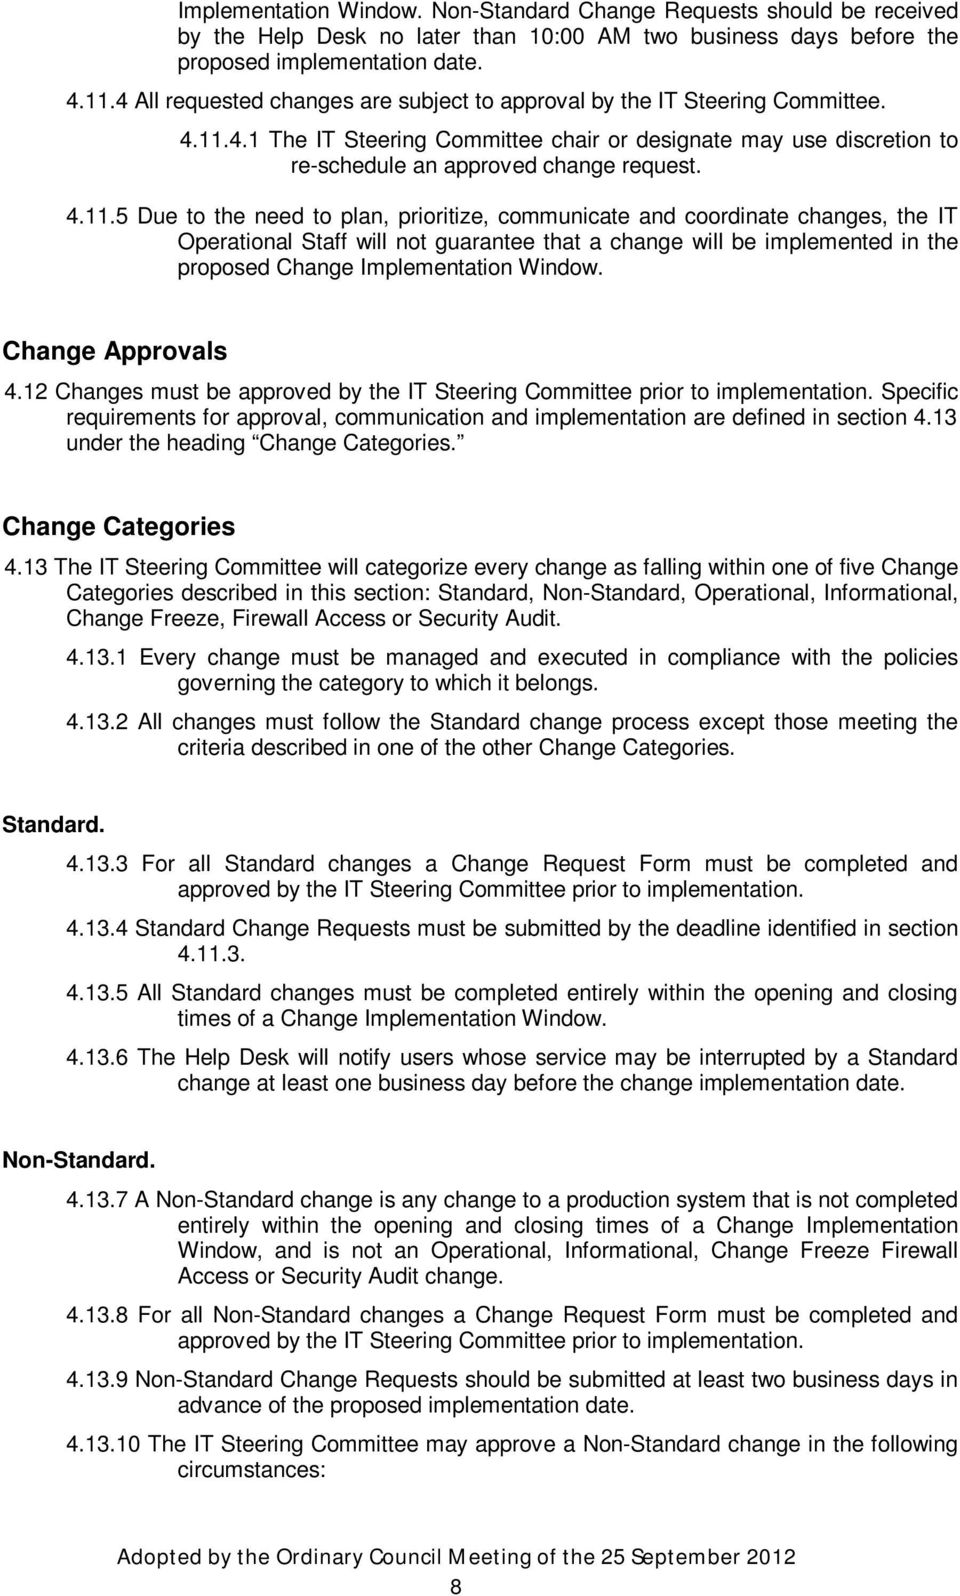 4.1 The IT Steering Committee chair or designate may use discretion to re-schedule an approved change request. 4.11.